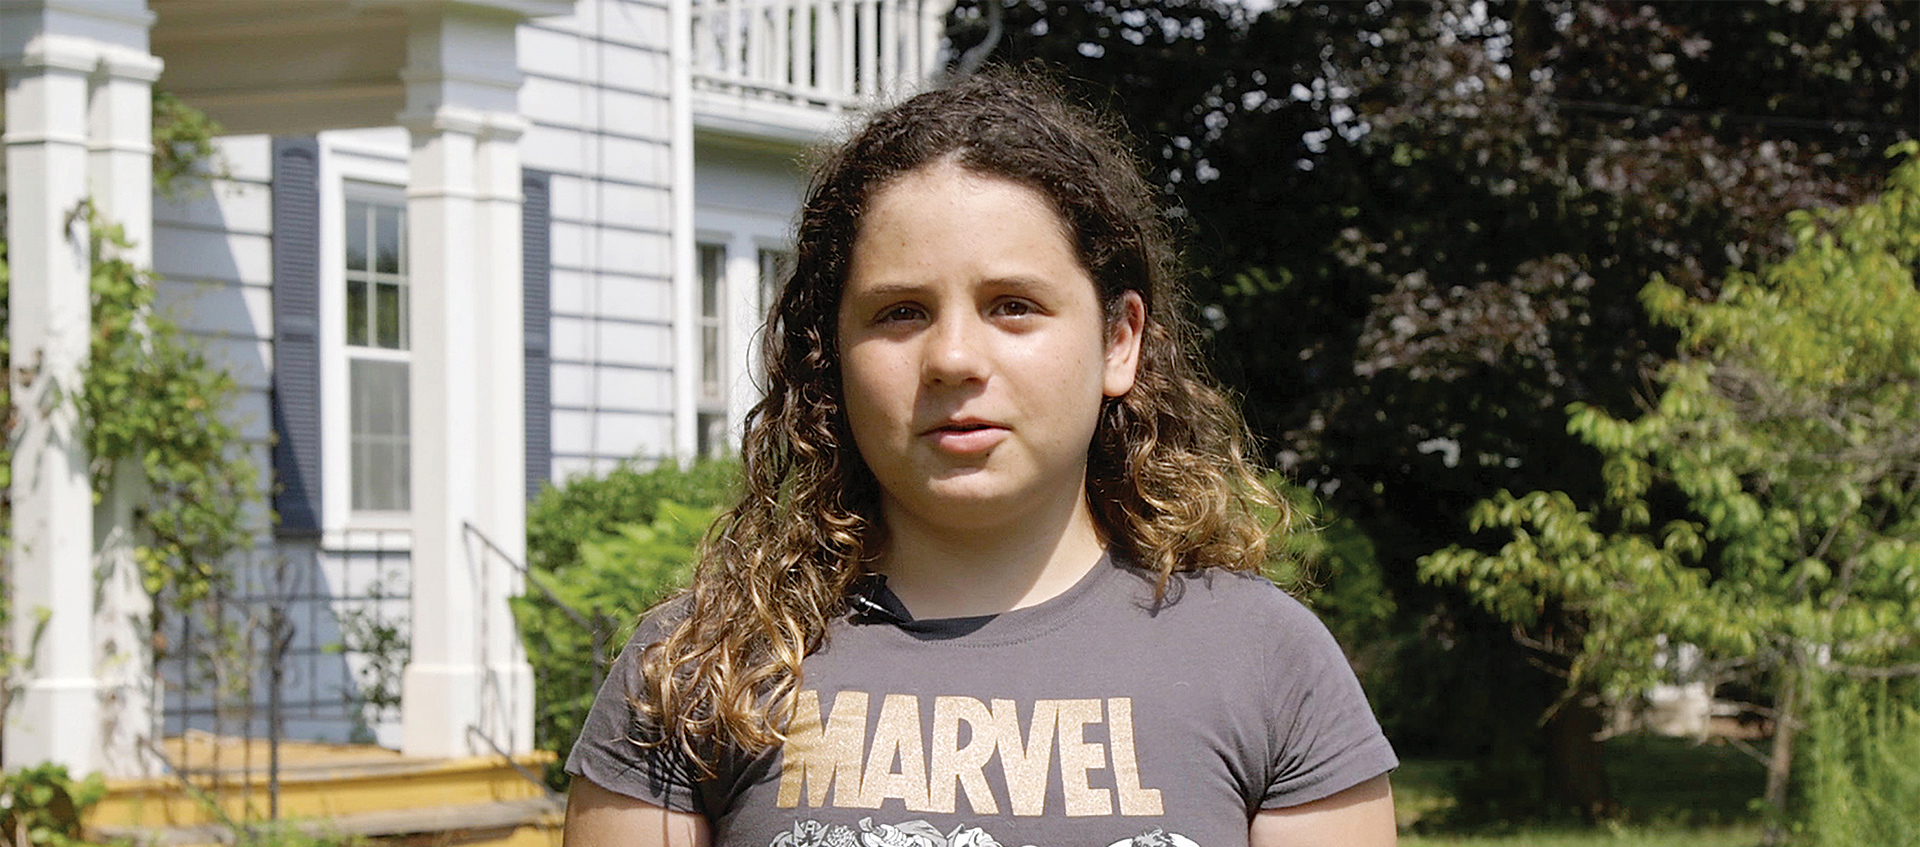 A girl in a Marvel T-shirt stands in front of a home